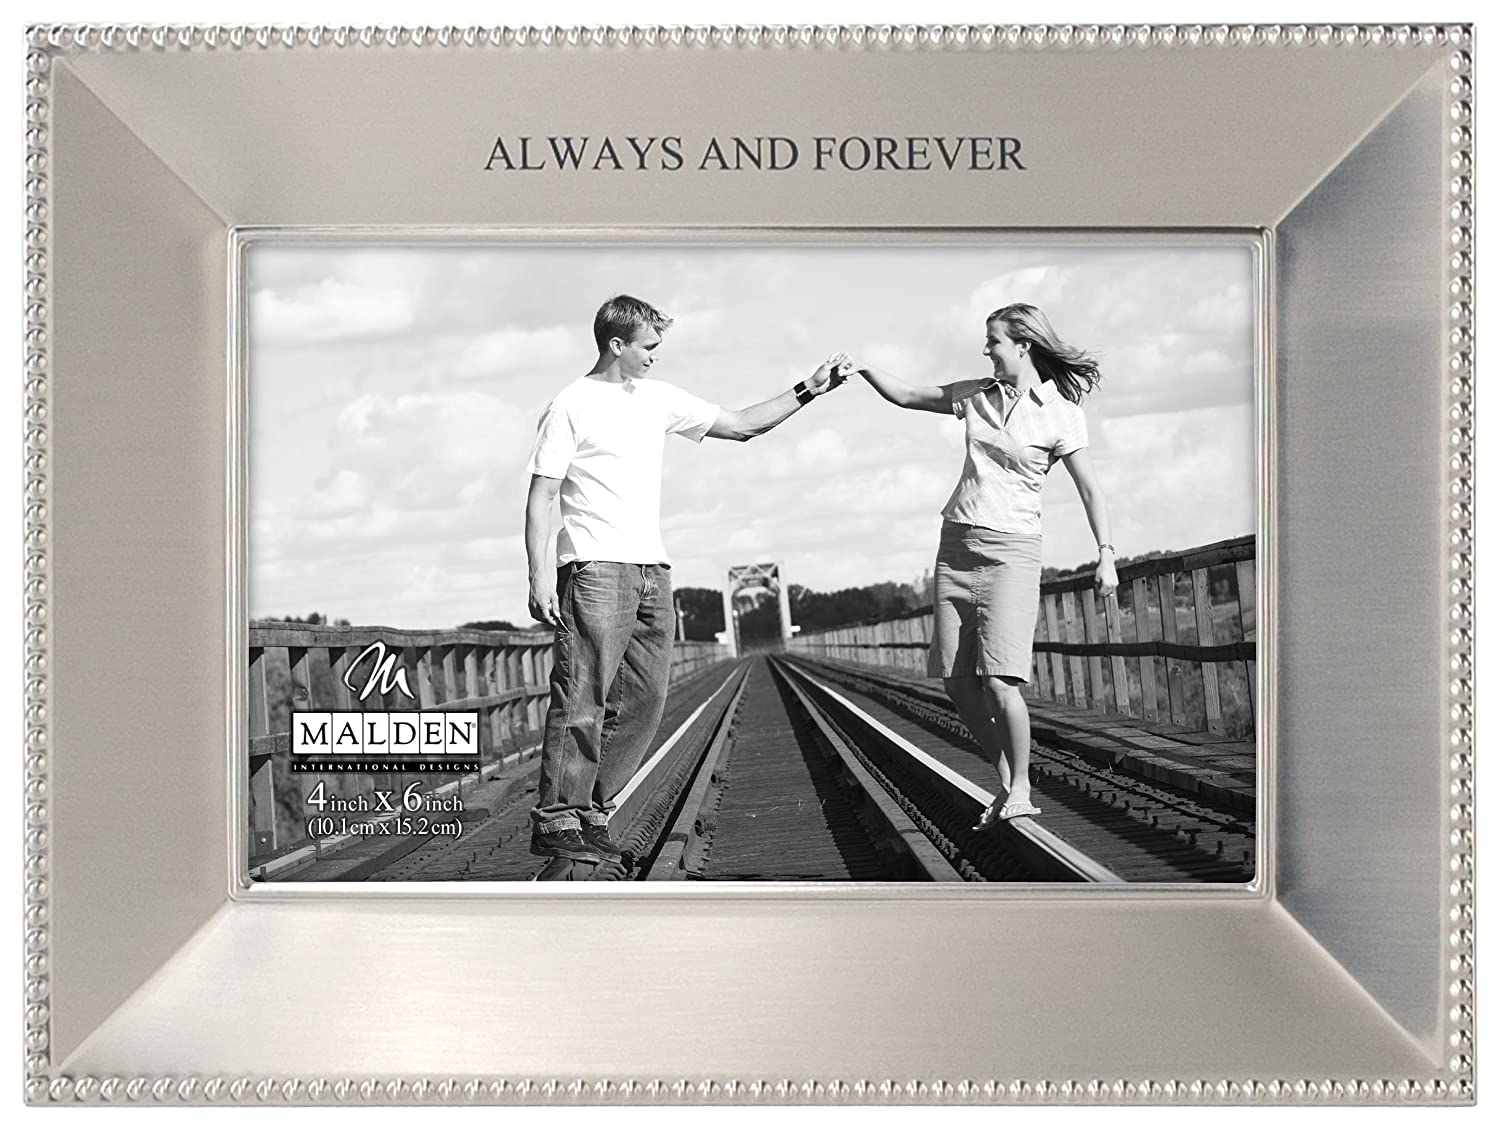 Malden Simply Stated Shiny Pewter Picture Frame, Always and Forever, 4 by 6-Inch – Single Frames